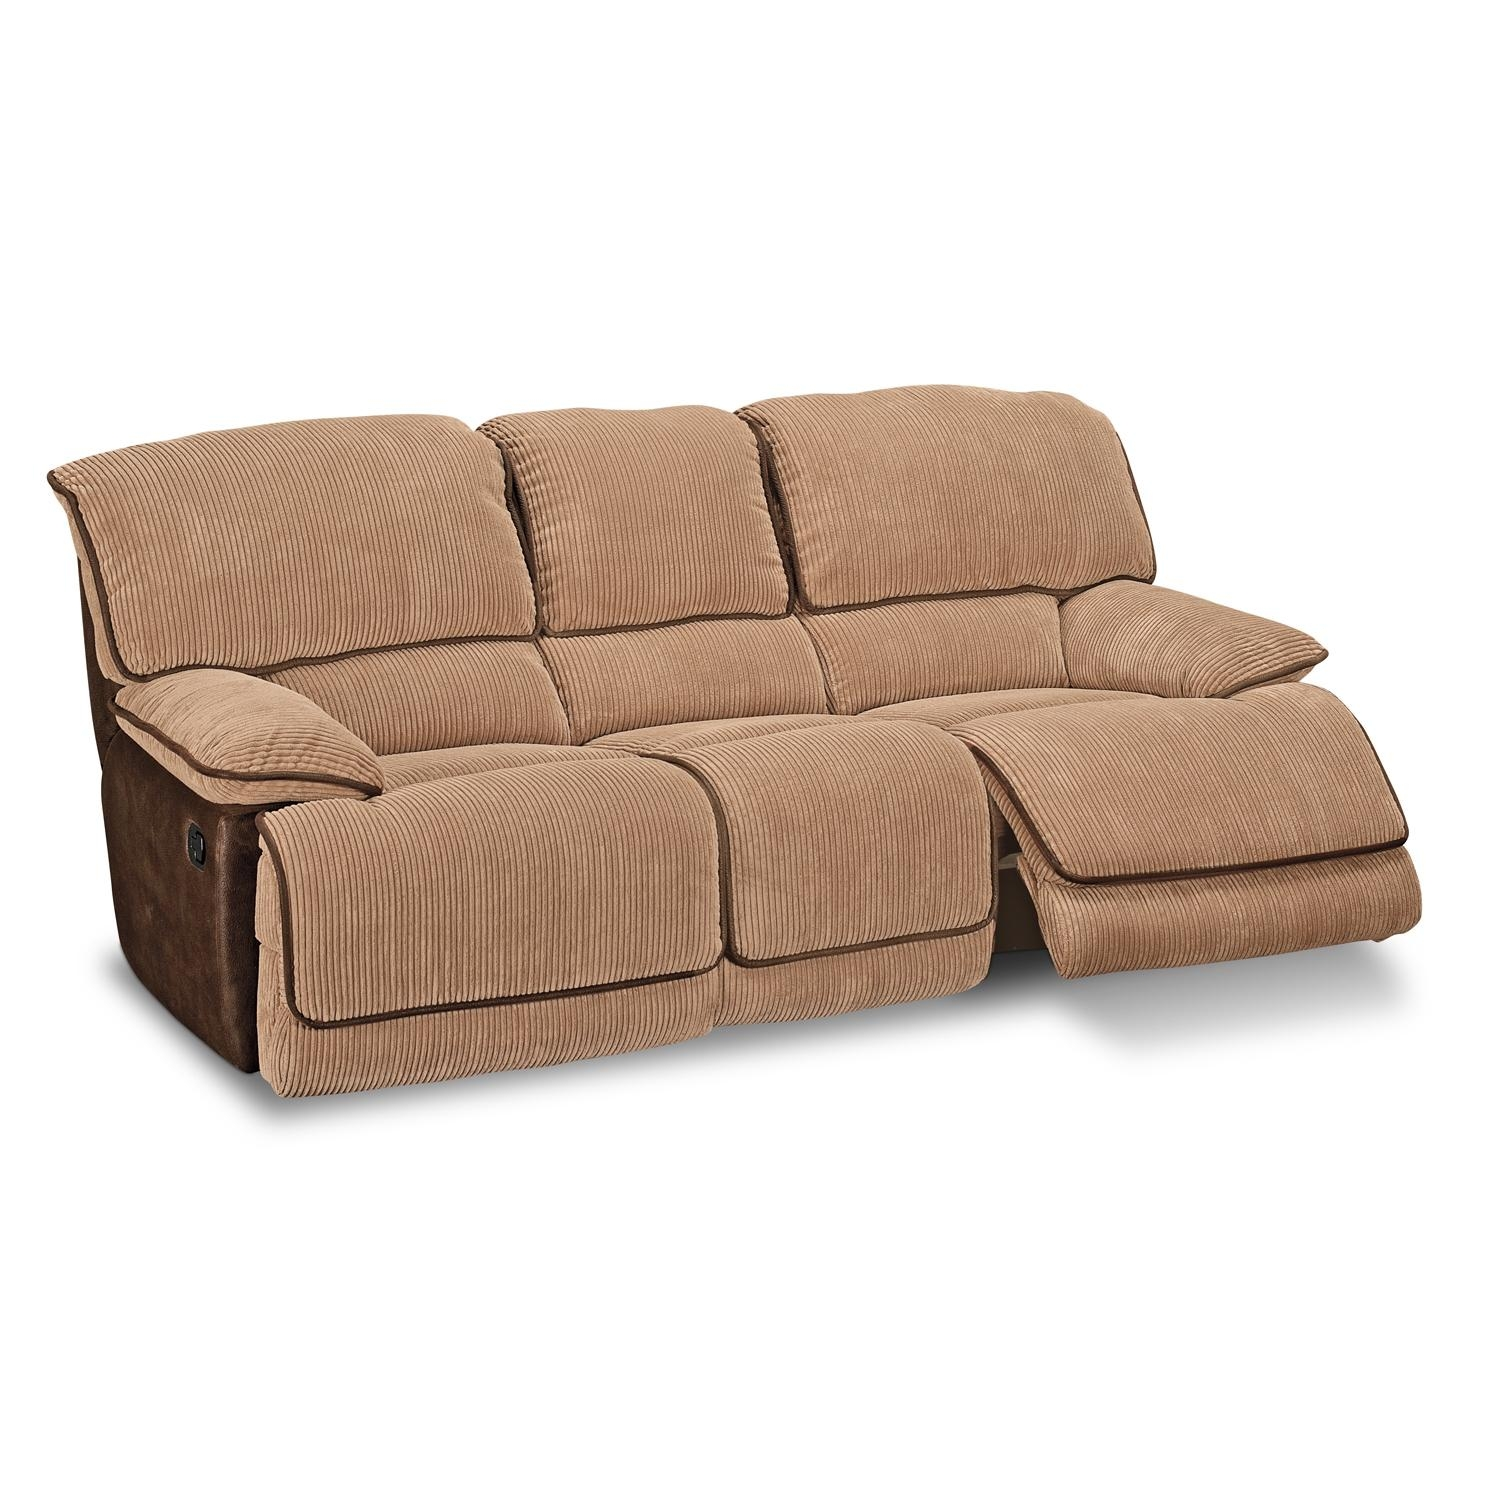 Slipcovers For Recliner Sofa | Sofa Gallery | Kengire Within Recliner Sofa Slipcovers (Image 11 of 20)